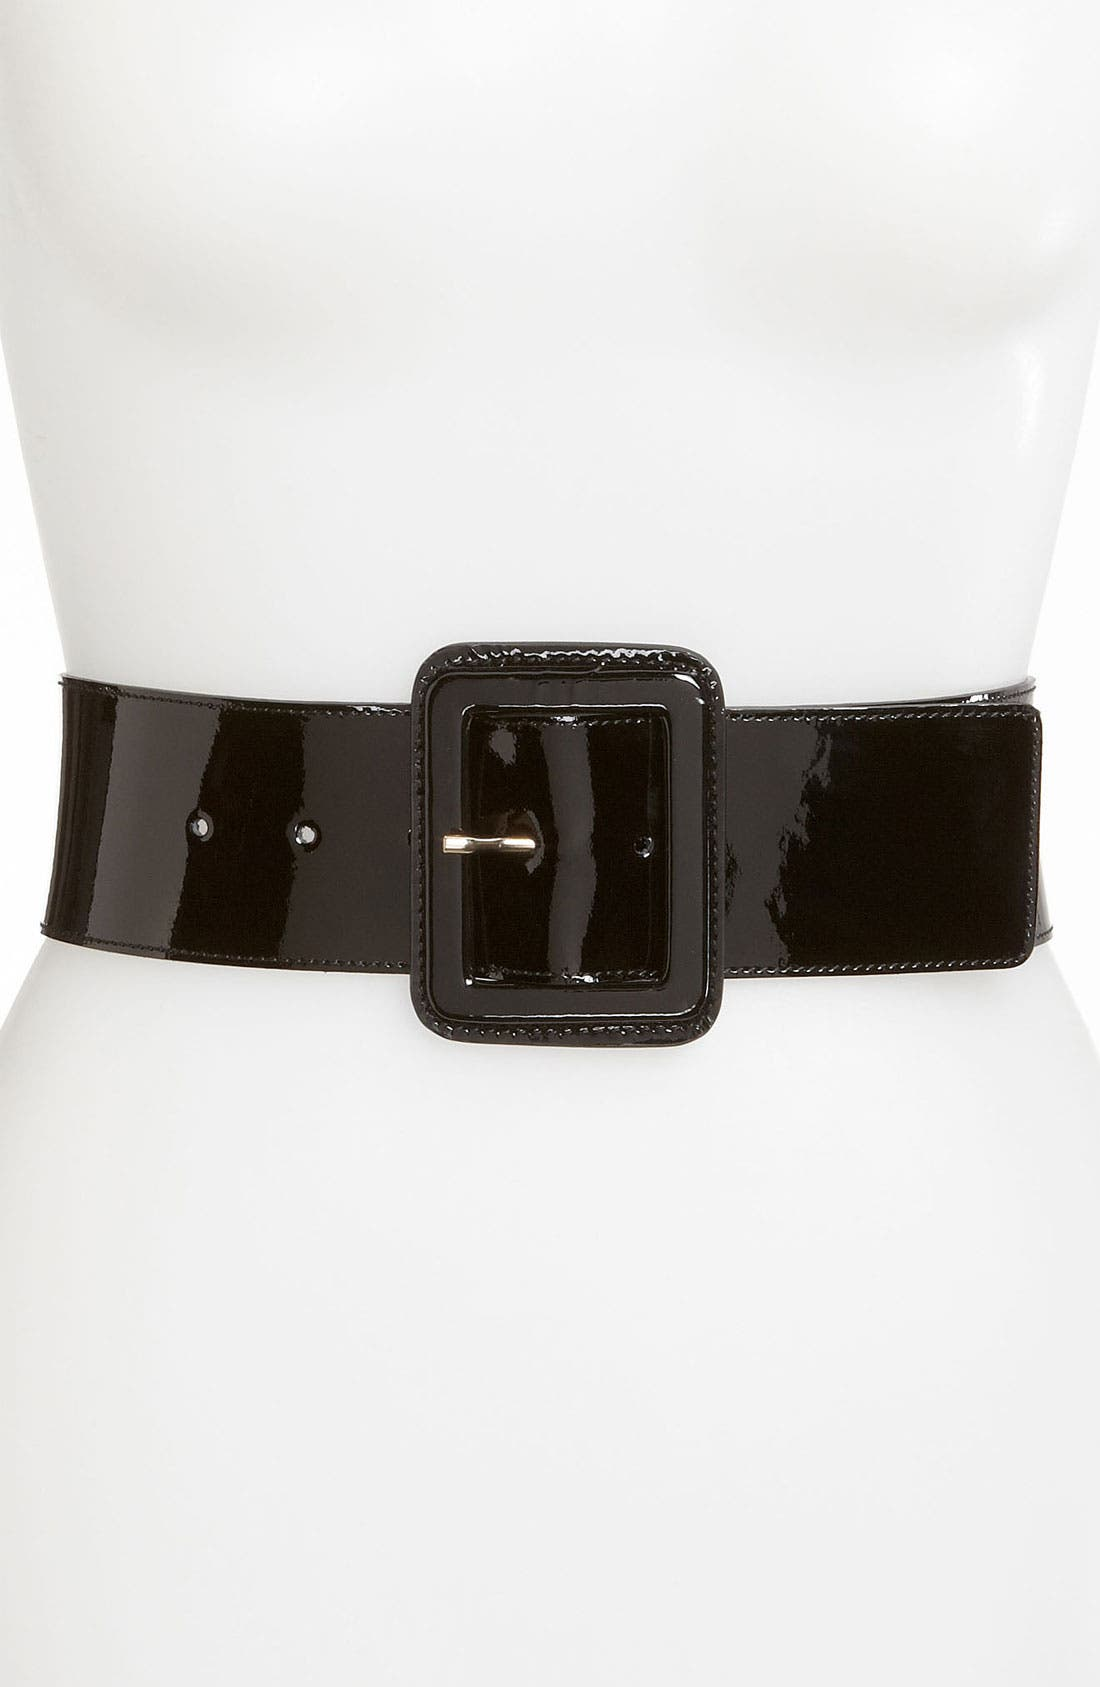 Alternate Image 1 Selected - St. John Collection Wide Patent Leather Belt